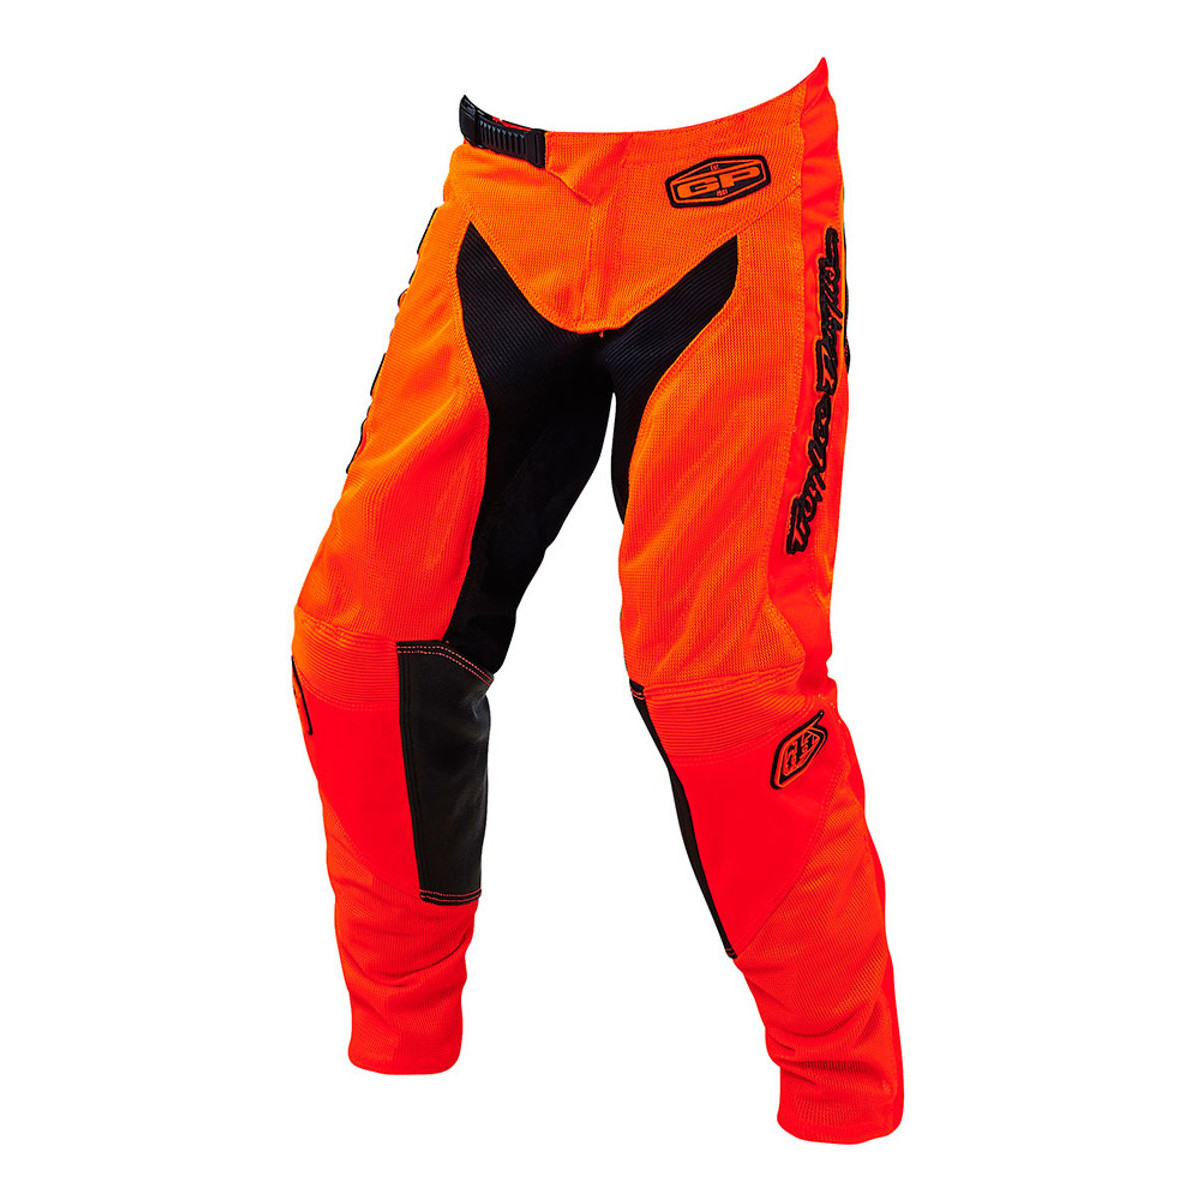 Troy Lee Designs Youth GP Air Pants  LTD GP Air Youth Moto Pant - Starburst Black:Orange